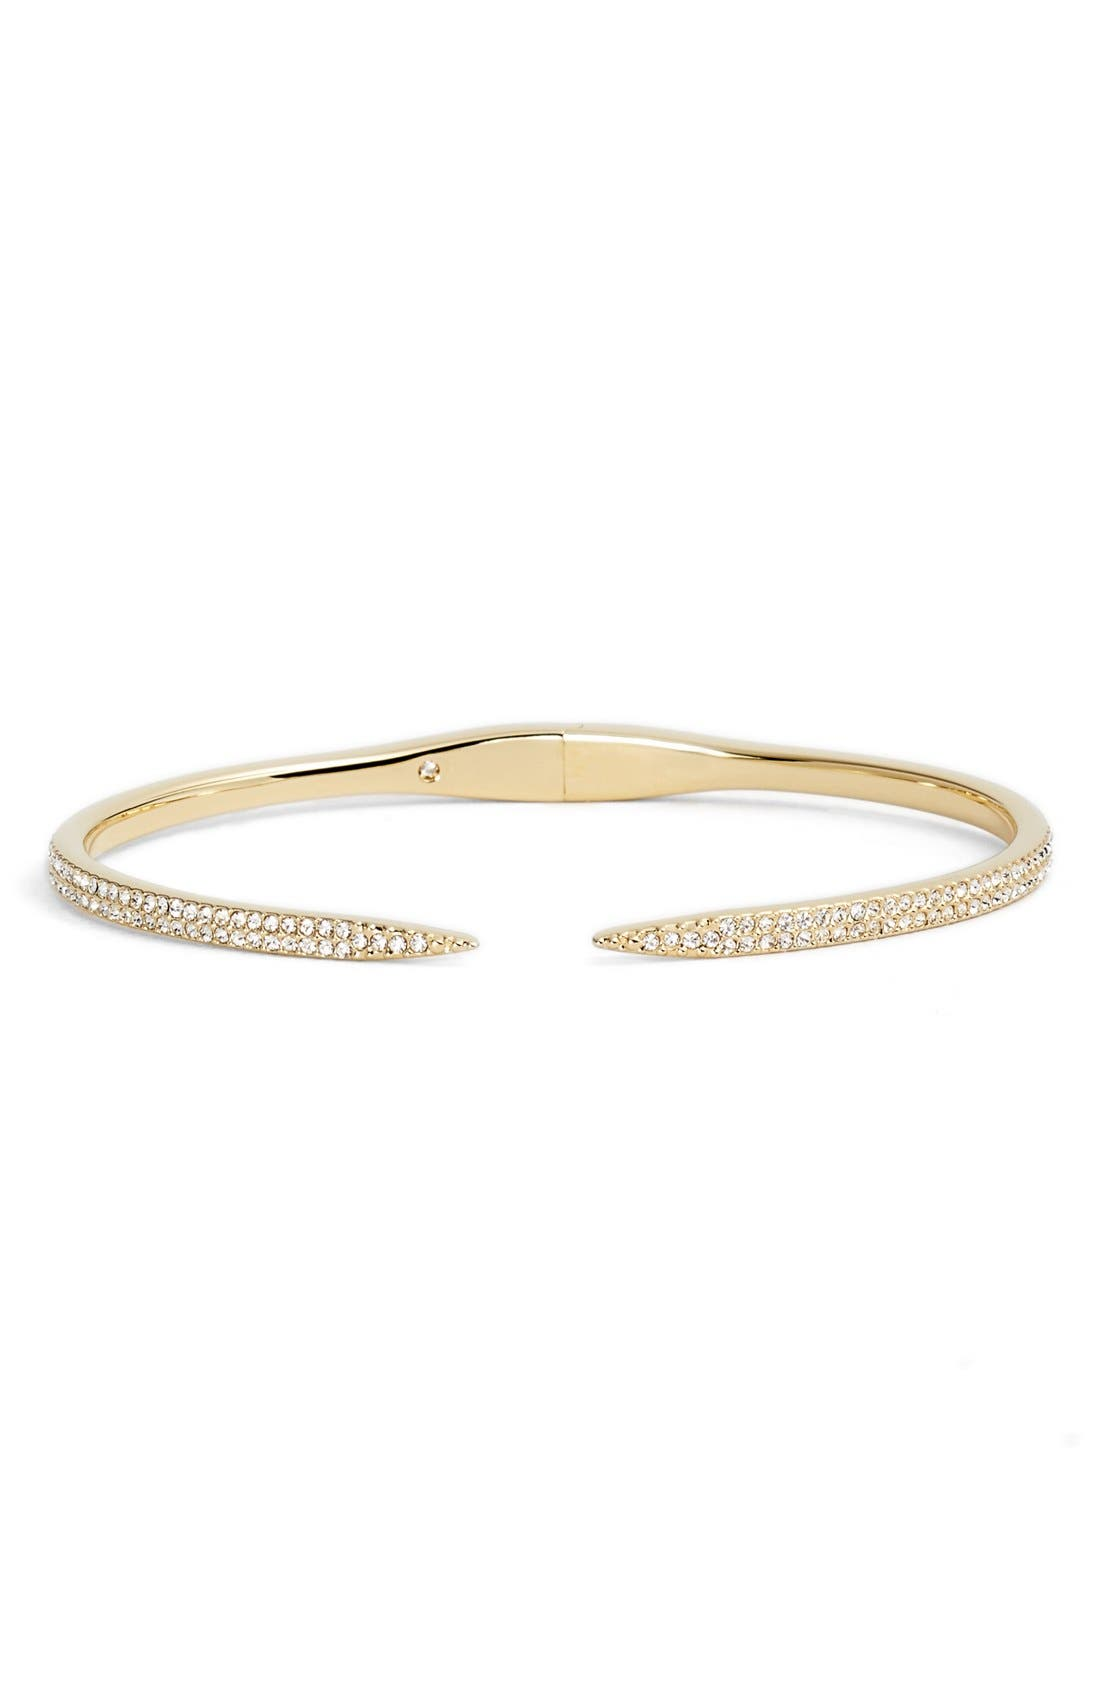 'TATTOO' PAVE HINGE BANGLE